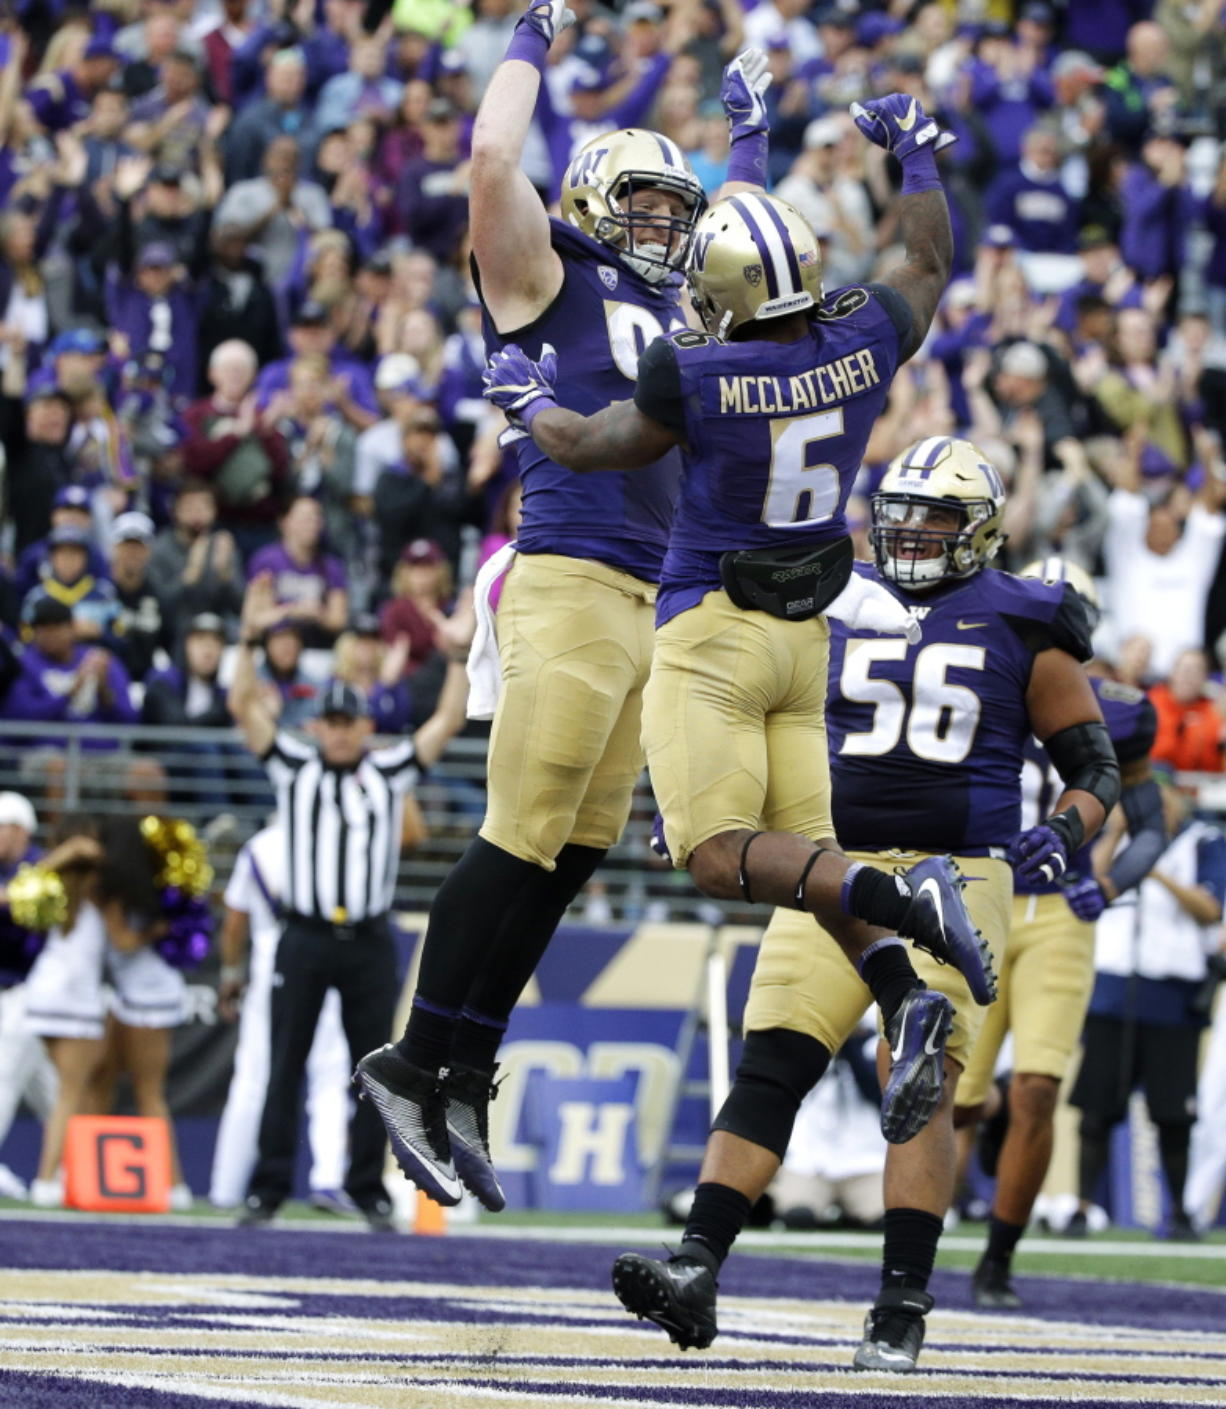 Return To Form For Huskies